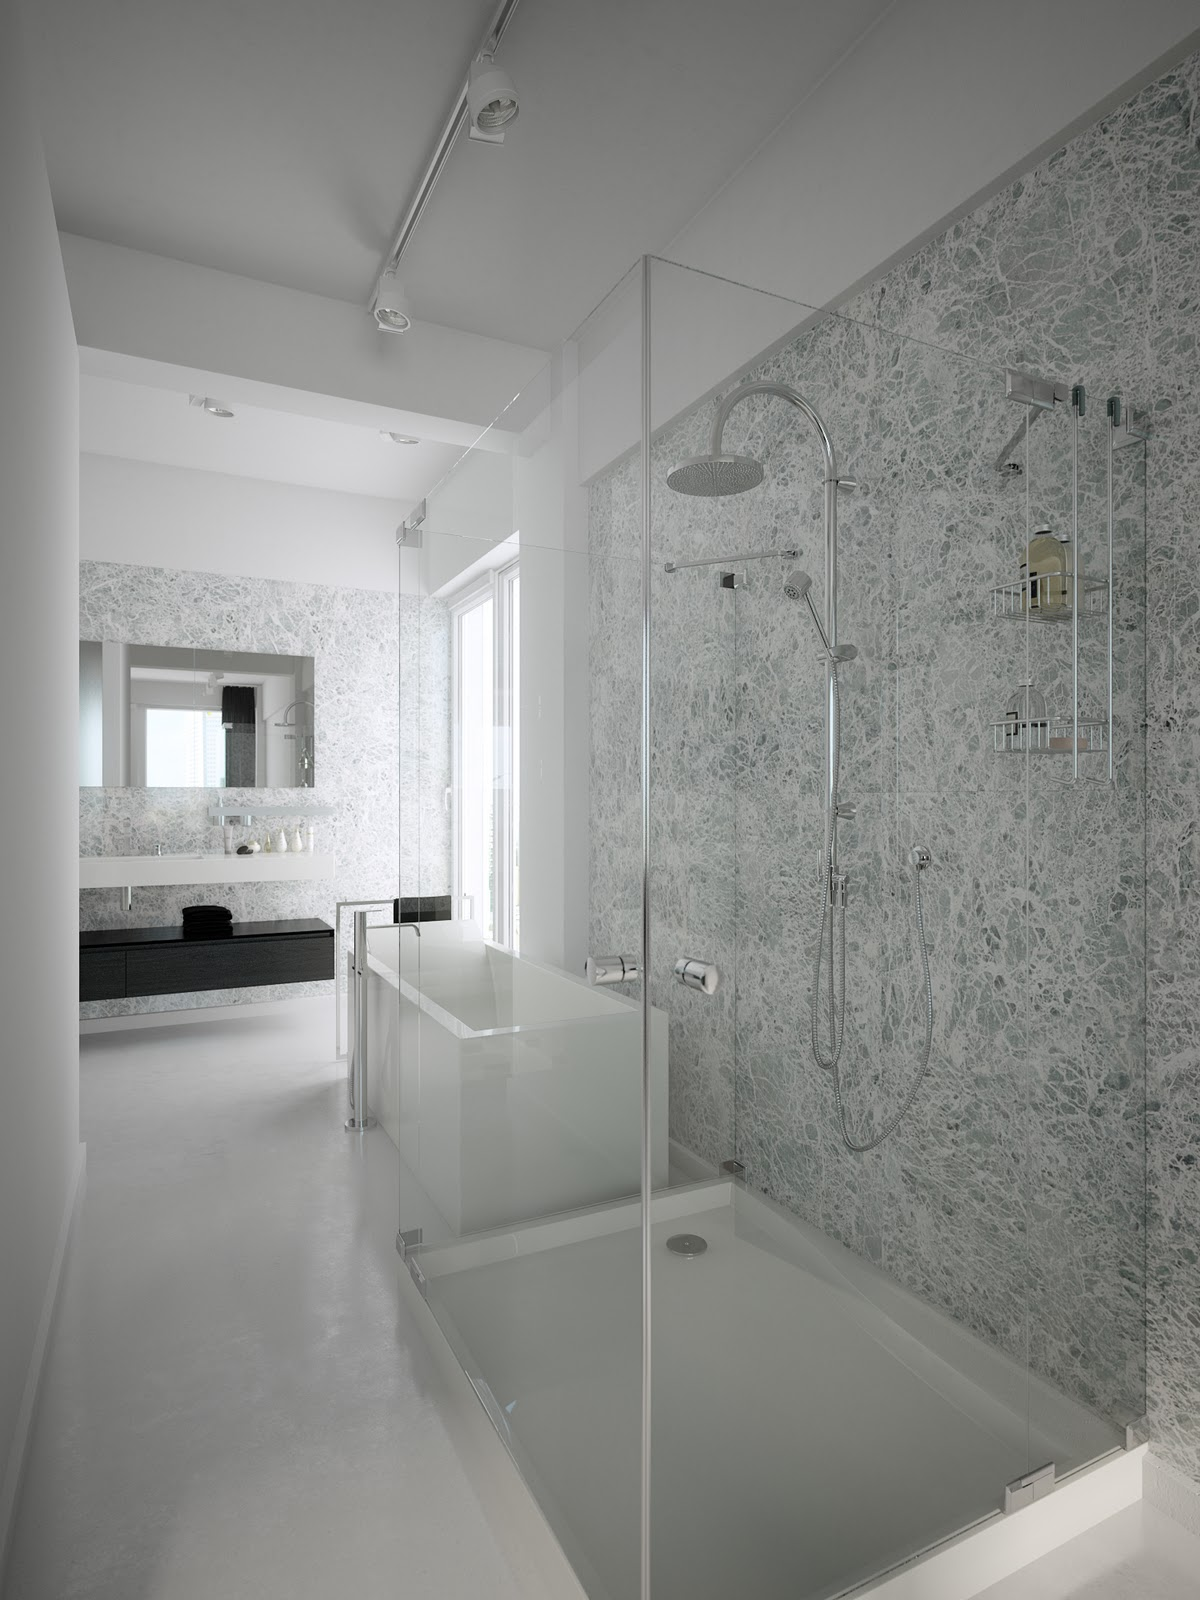 Black white shower room interior design ideas for Bathroom room design